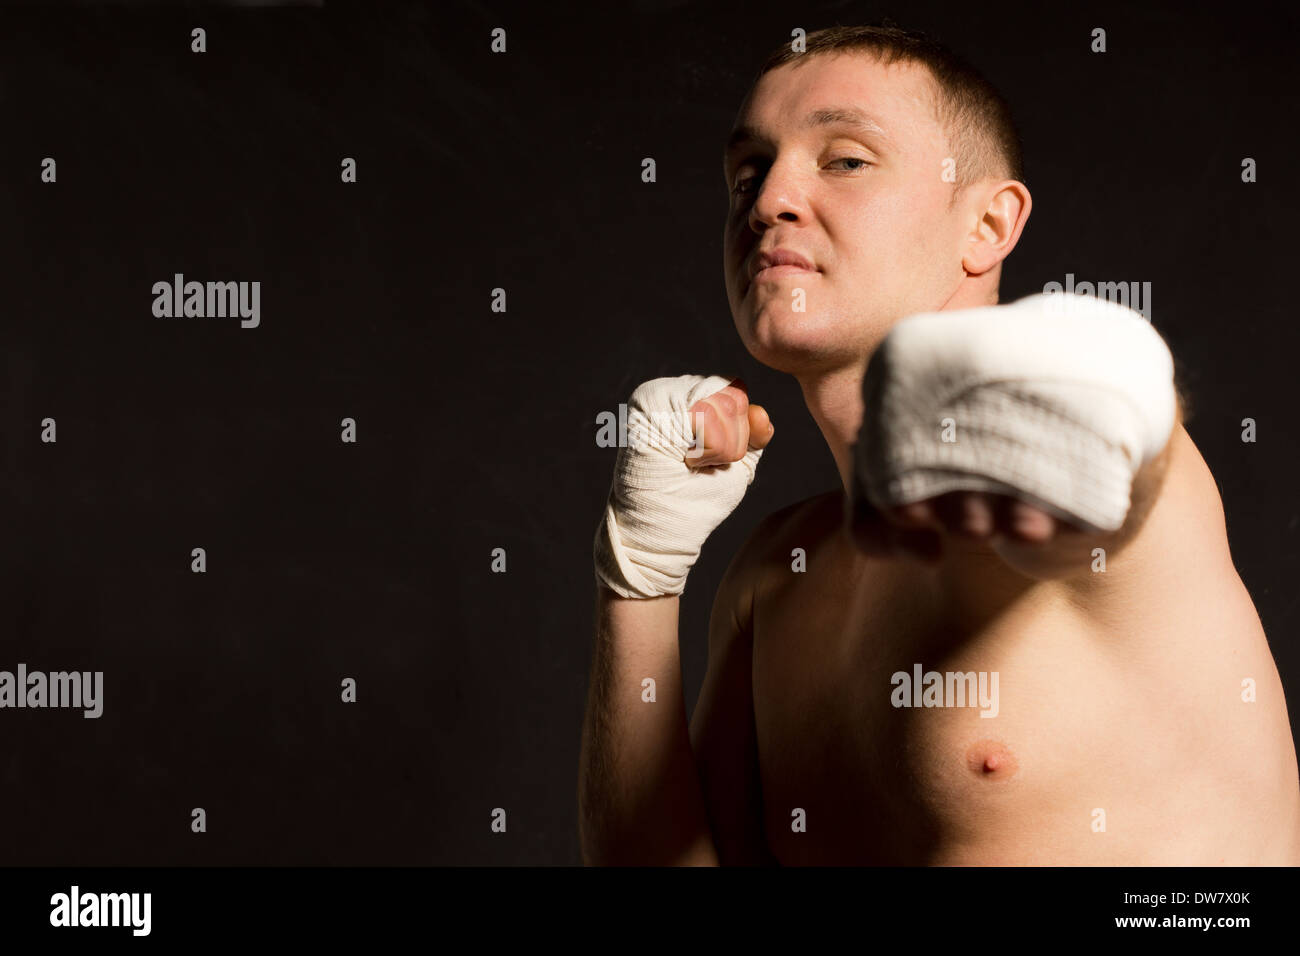 Belligerent young boxer throwing a punch - Stock Image